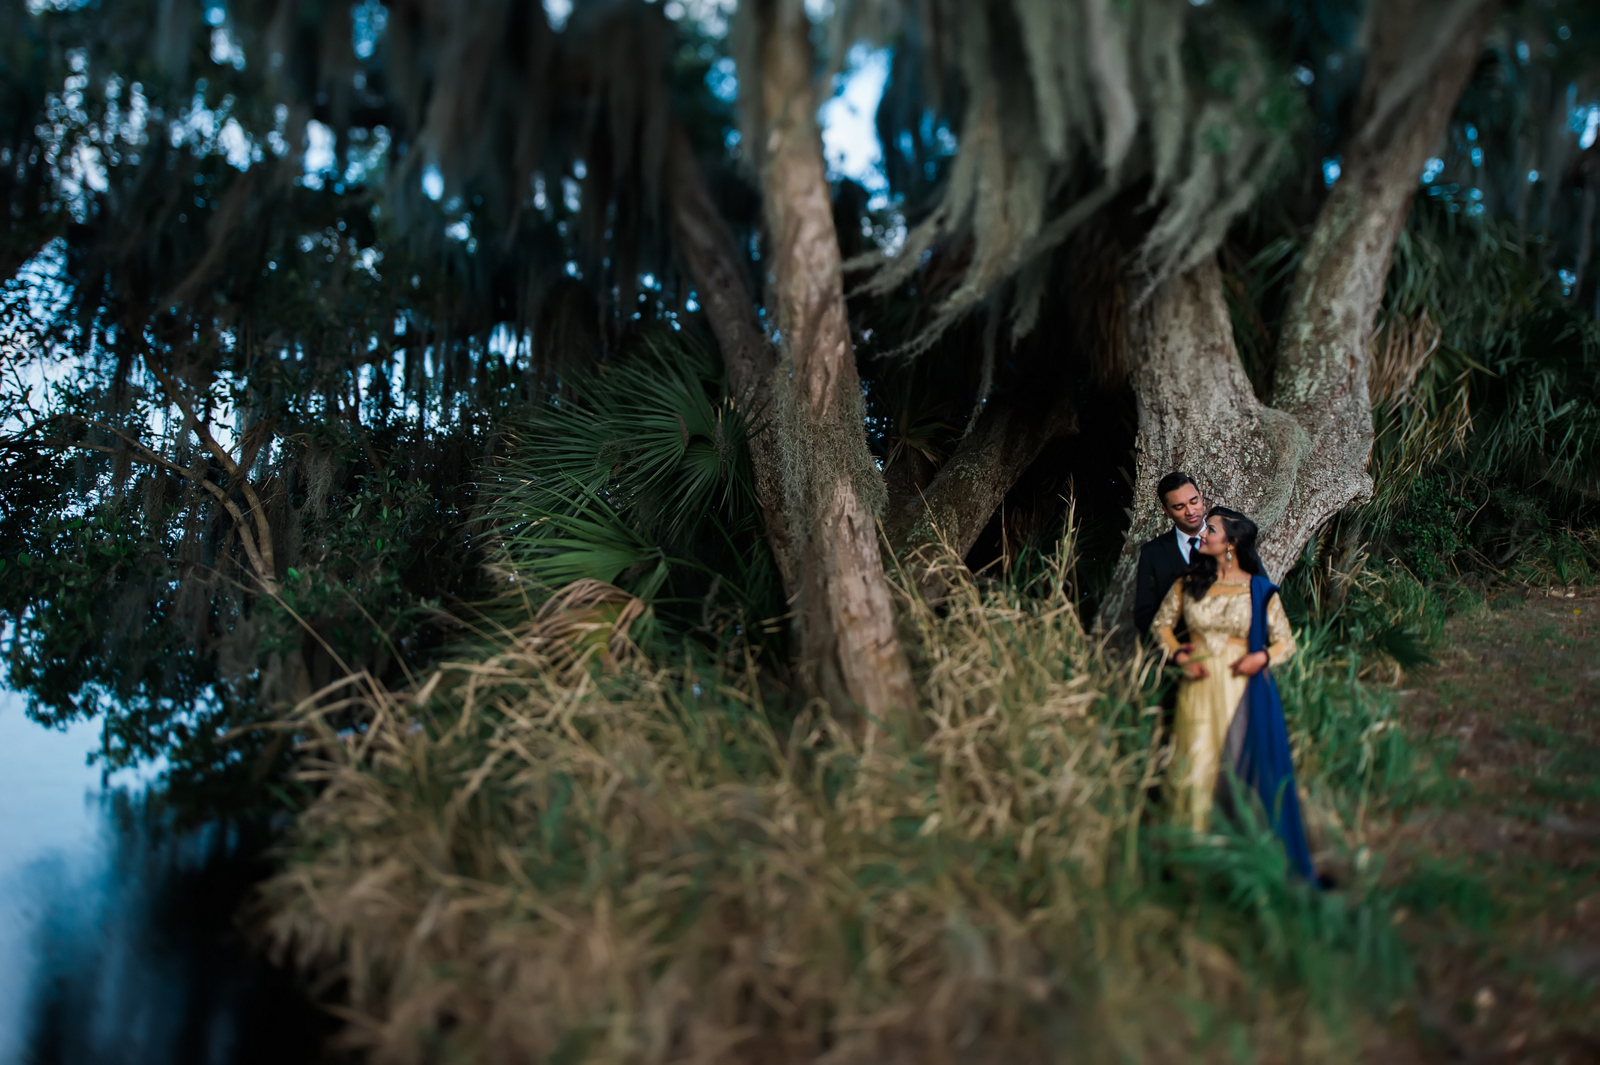 Kimi + Jomeo | Safety Harbor Resort and Spa – Safety Harbor, FL, Miami Wedding Photographers | Häring Photography, Indian Wedding Photographer in Florida, Best Muslim, Hindu - South East Asian Wedding Photographers